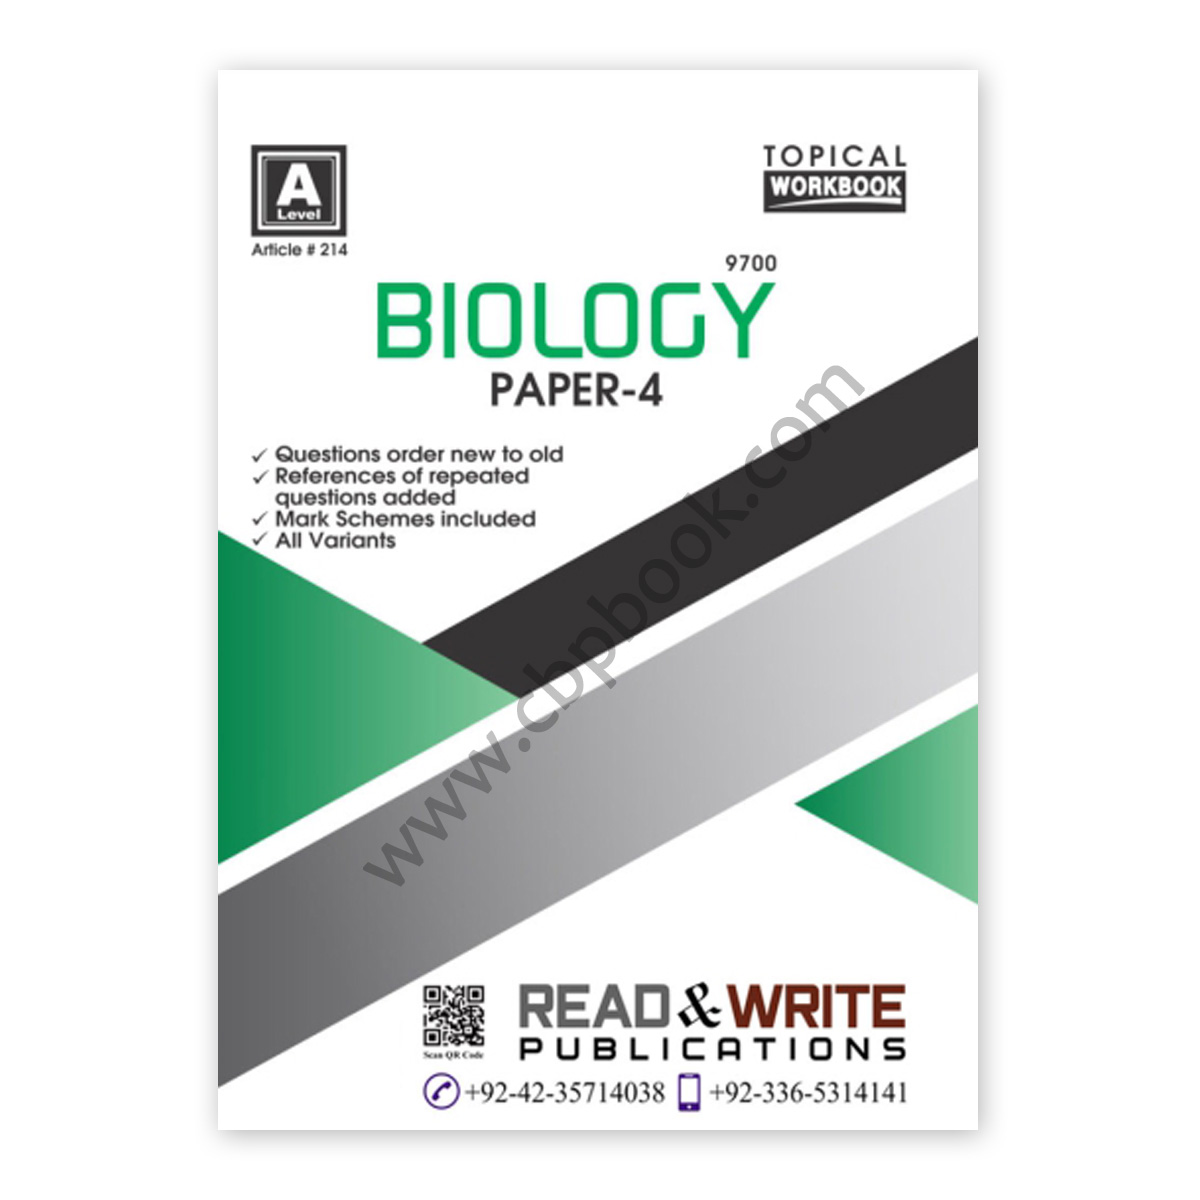 a level biology paper 4 topical workbook (art#214) - read & write